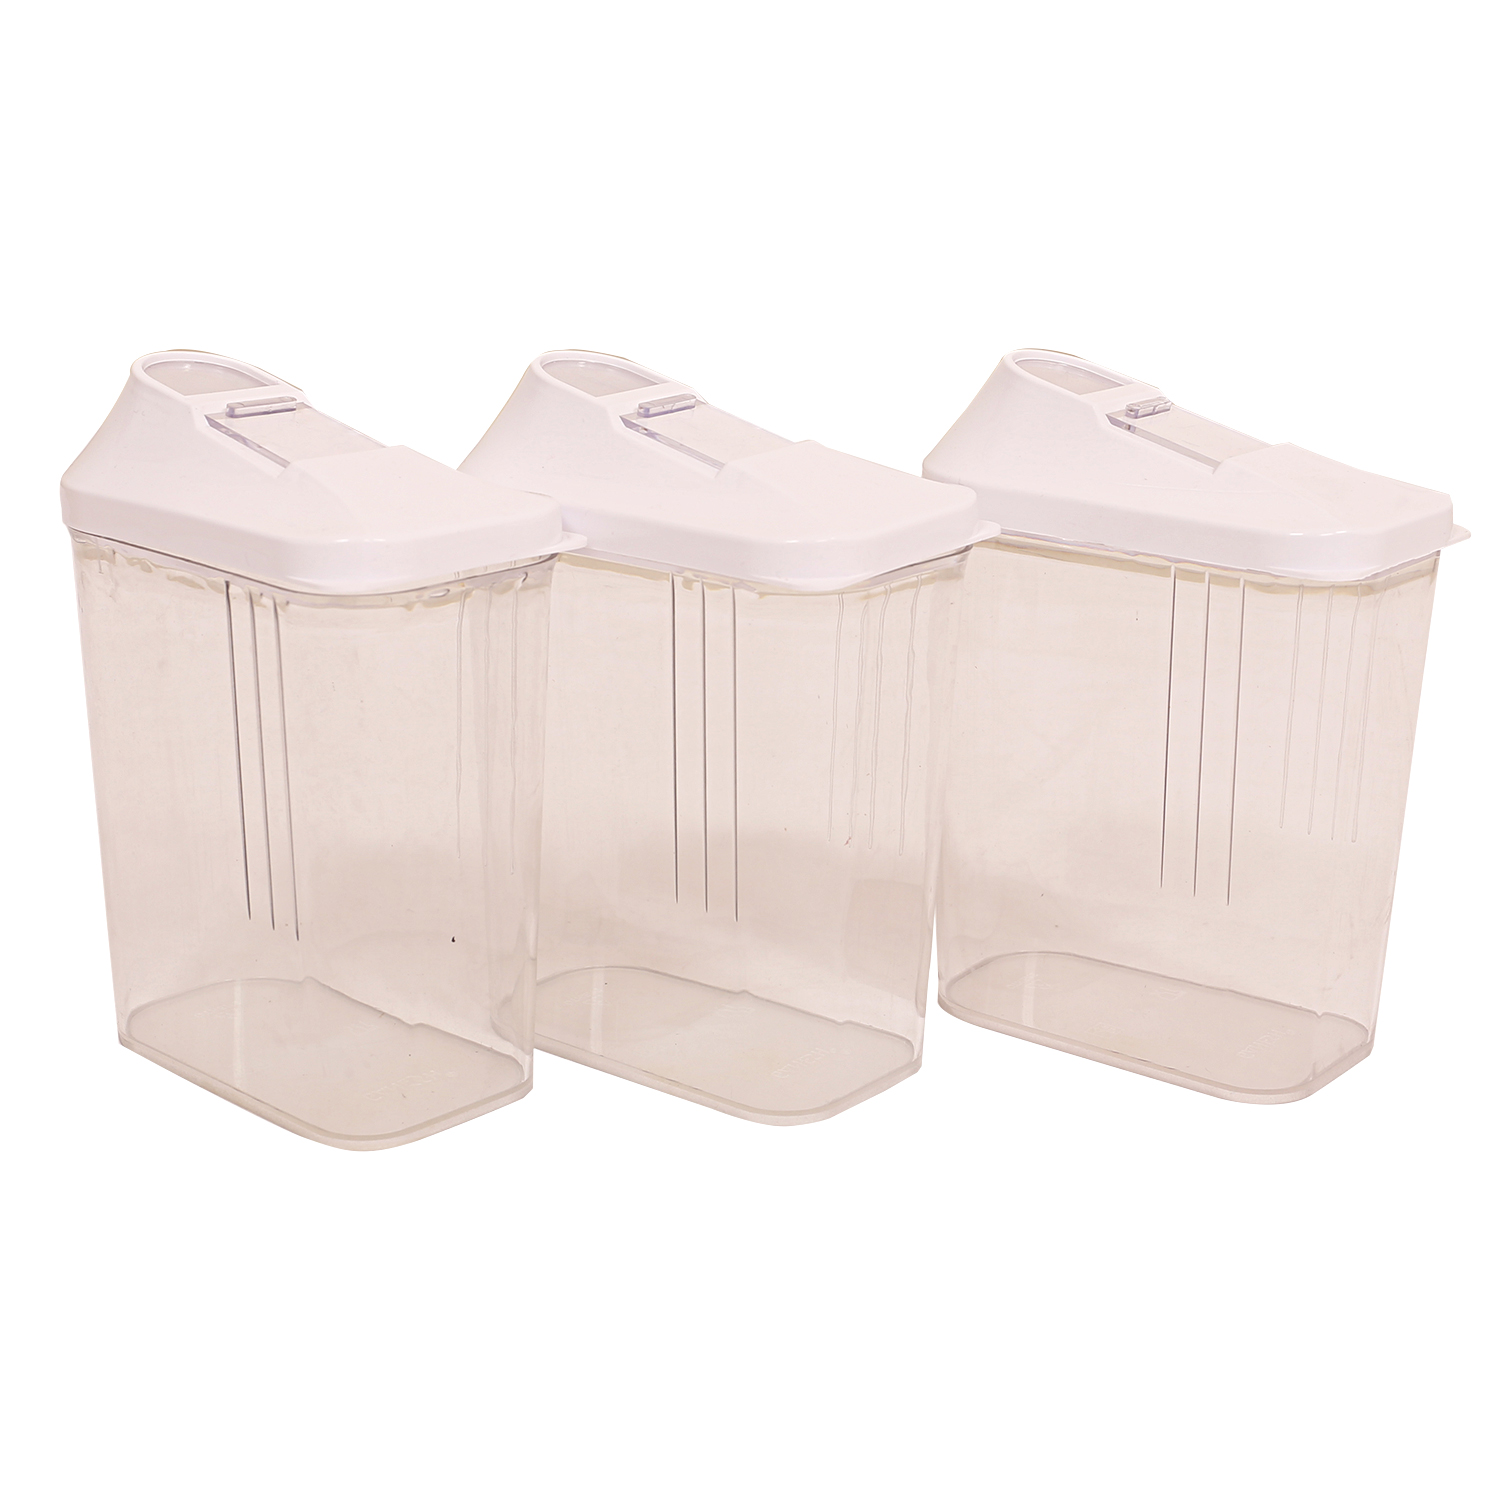 Kuber Industries Plastic Multipurpose Kitchen Container Set of 3 Pcs